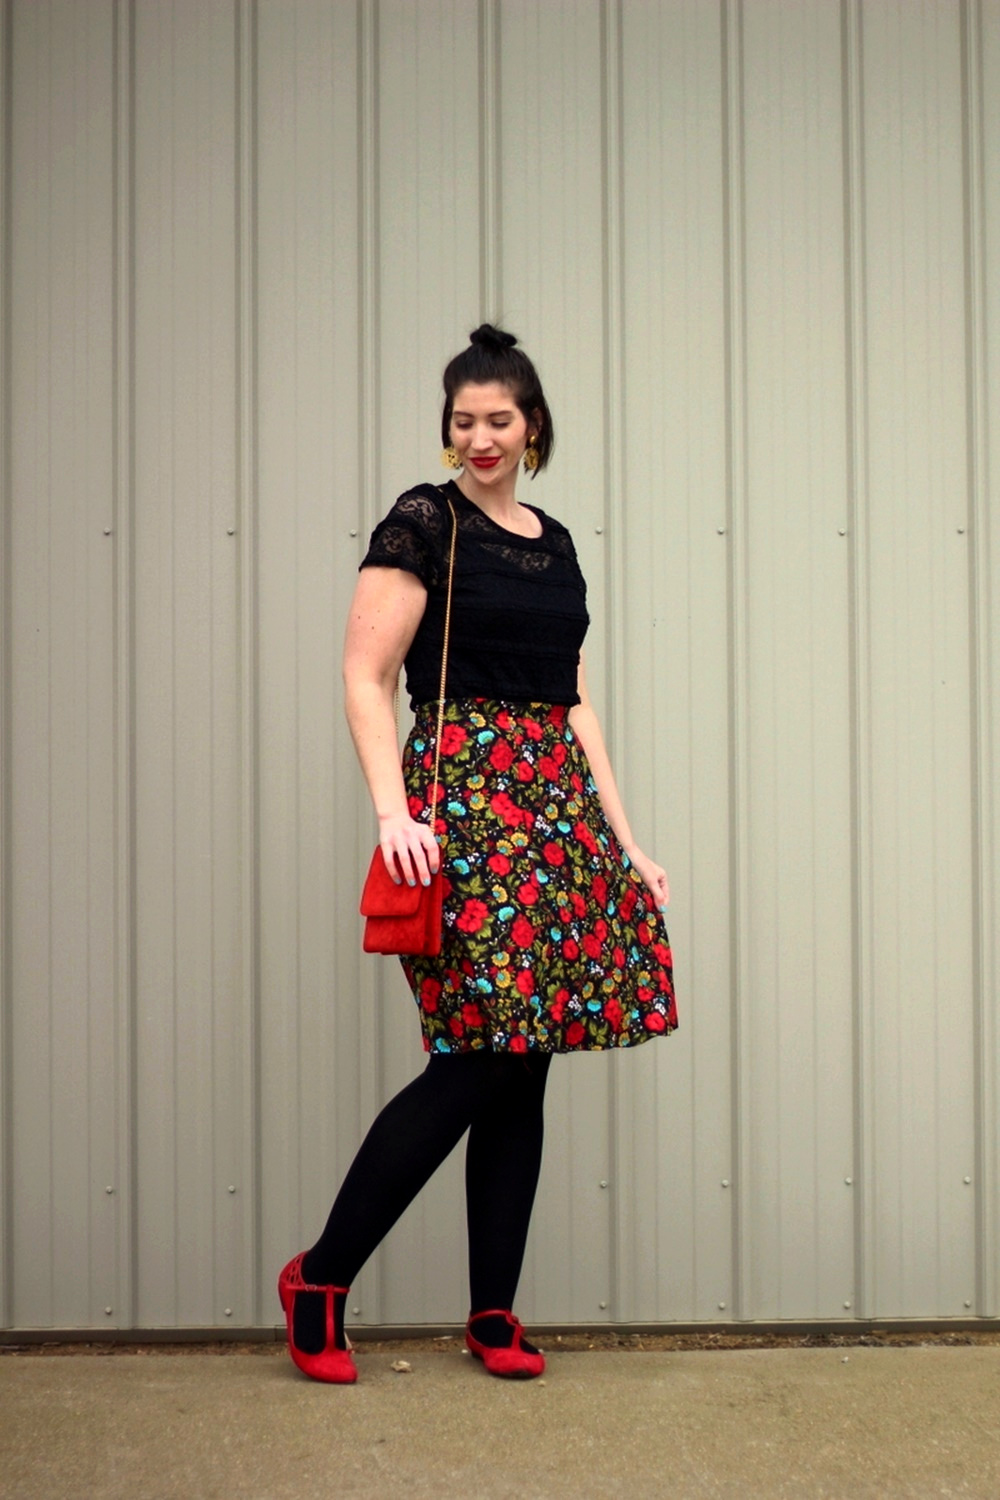 Black lace top, thrifted floral skirt, Revlon Really Red lipstick, vintage gold lion head earrings, black We Love Colors tights, red purse, red ballet flat shoes